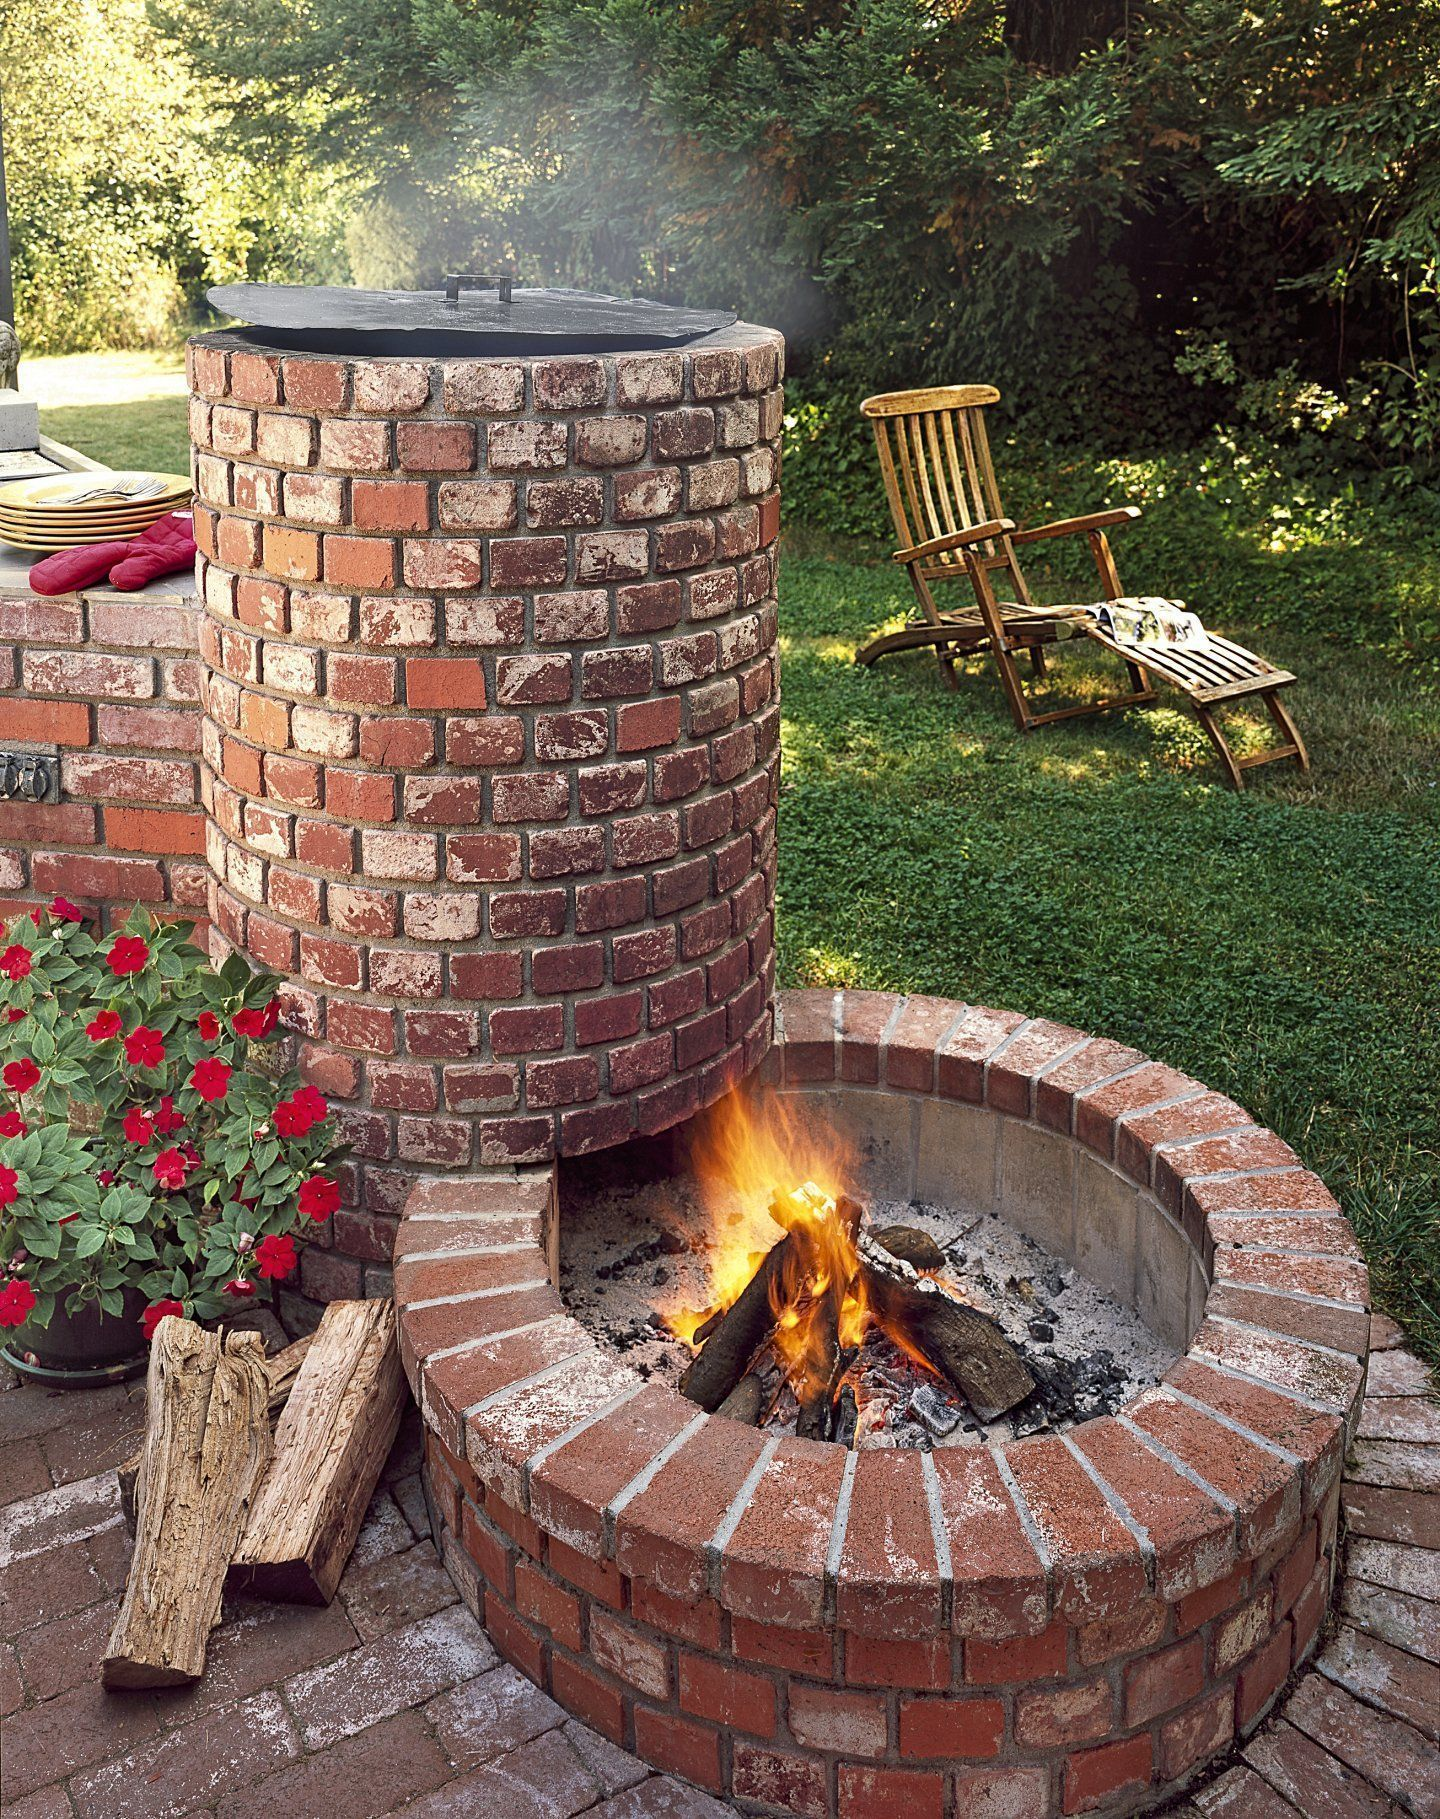 Best Pictures, Images And Photos About Fire Pit Ideas Fire